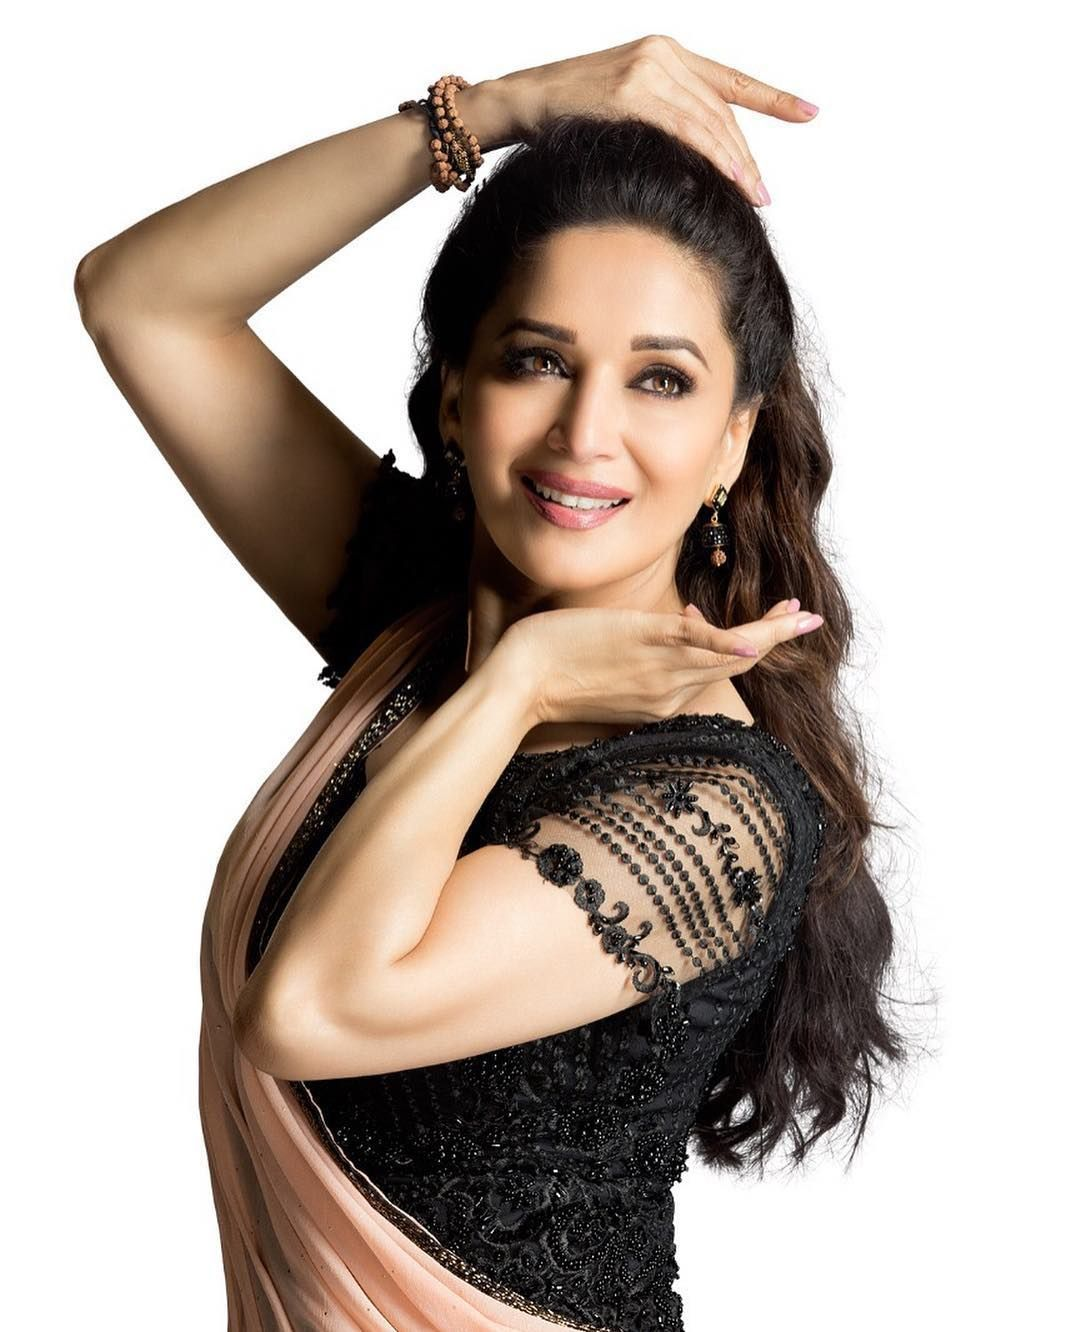 Madhuri Dixit Beautiful HD Photoshoot Stills & Mobile Wallpapers HD (1080p) (35991) - Madhuri Dixit